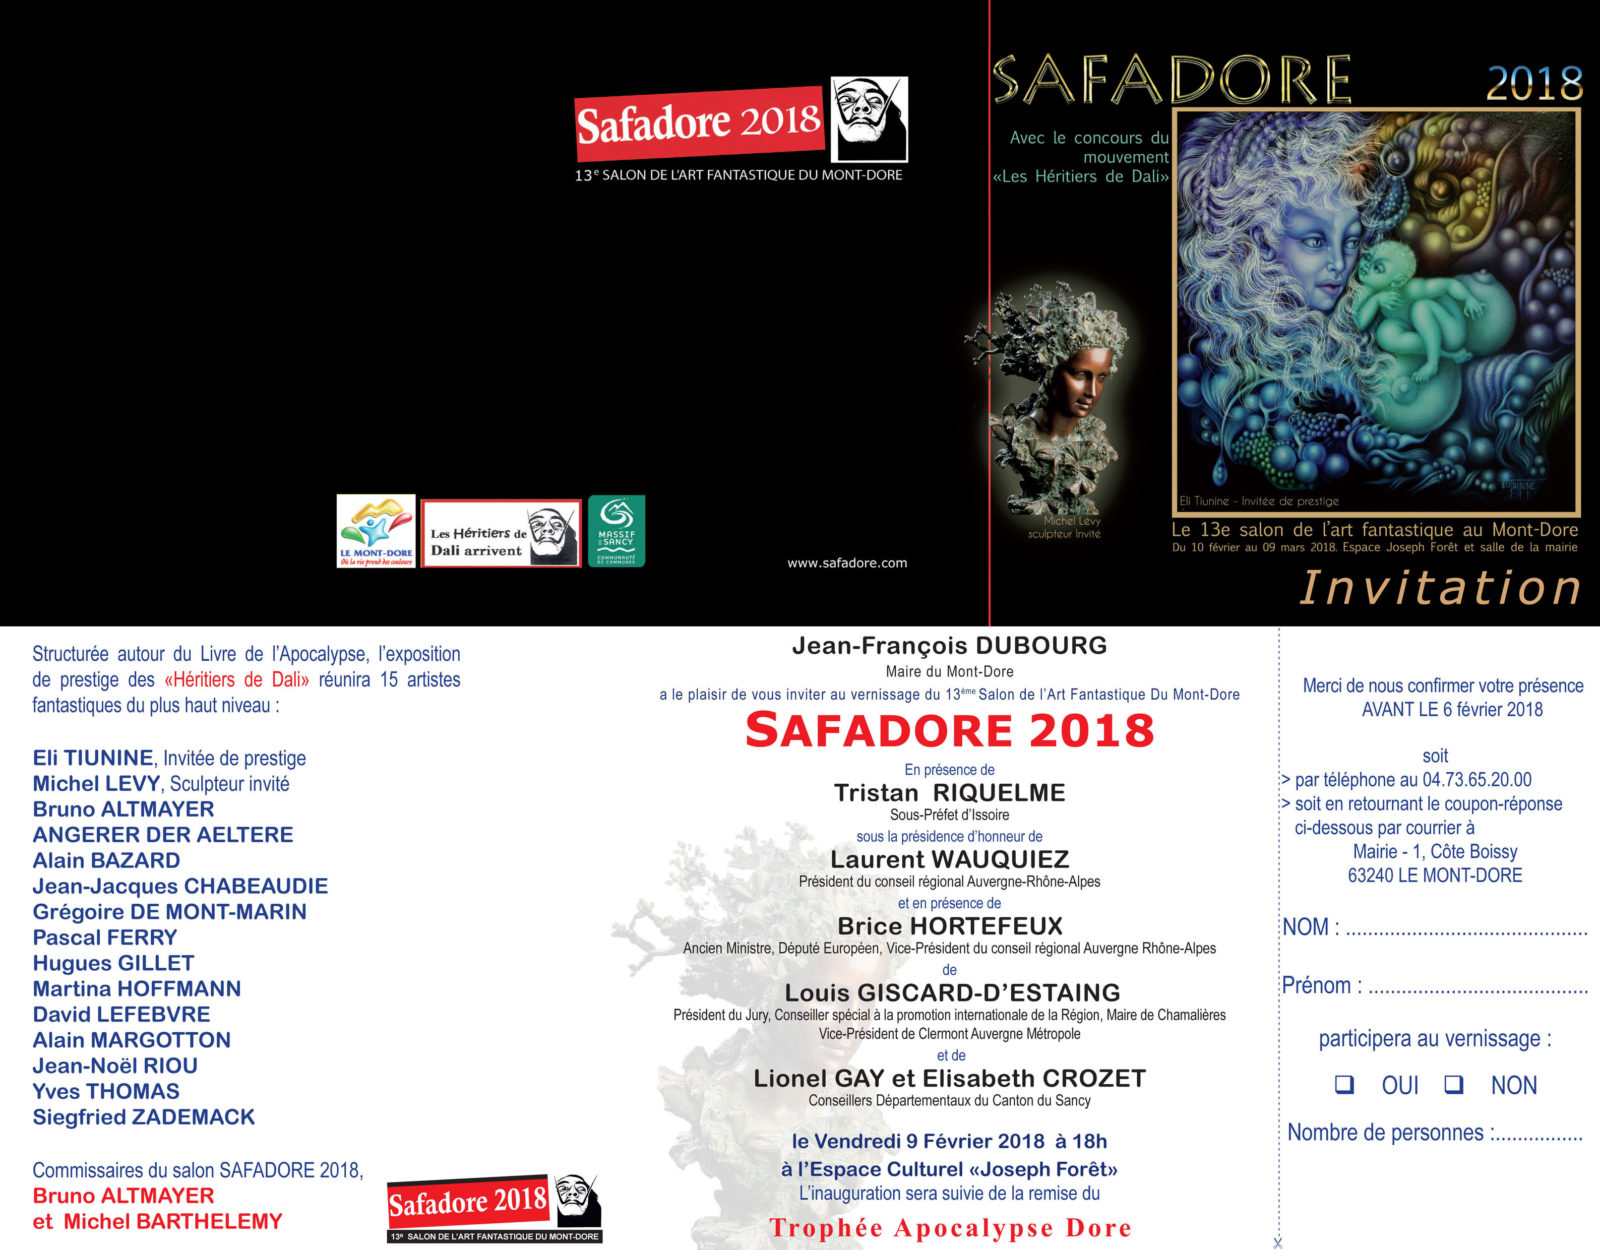 Safadore 2018 - Salon de l'art de l'imaginaire au Mont-Dore -Invitation